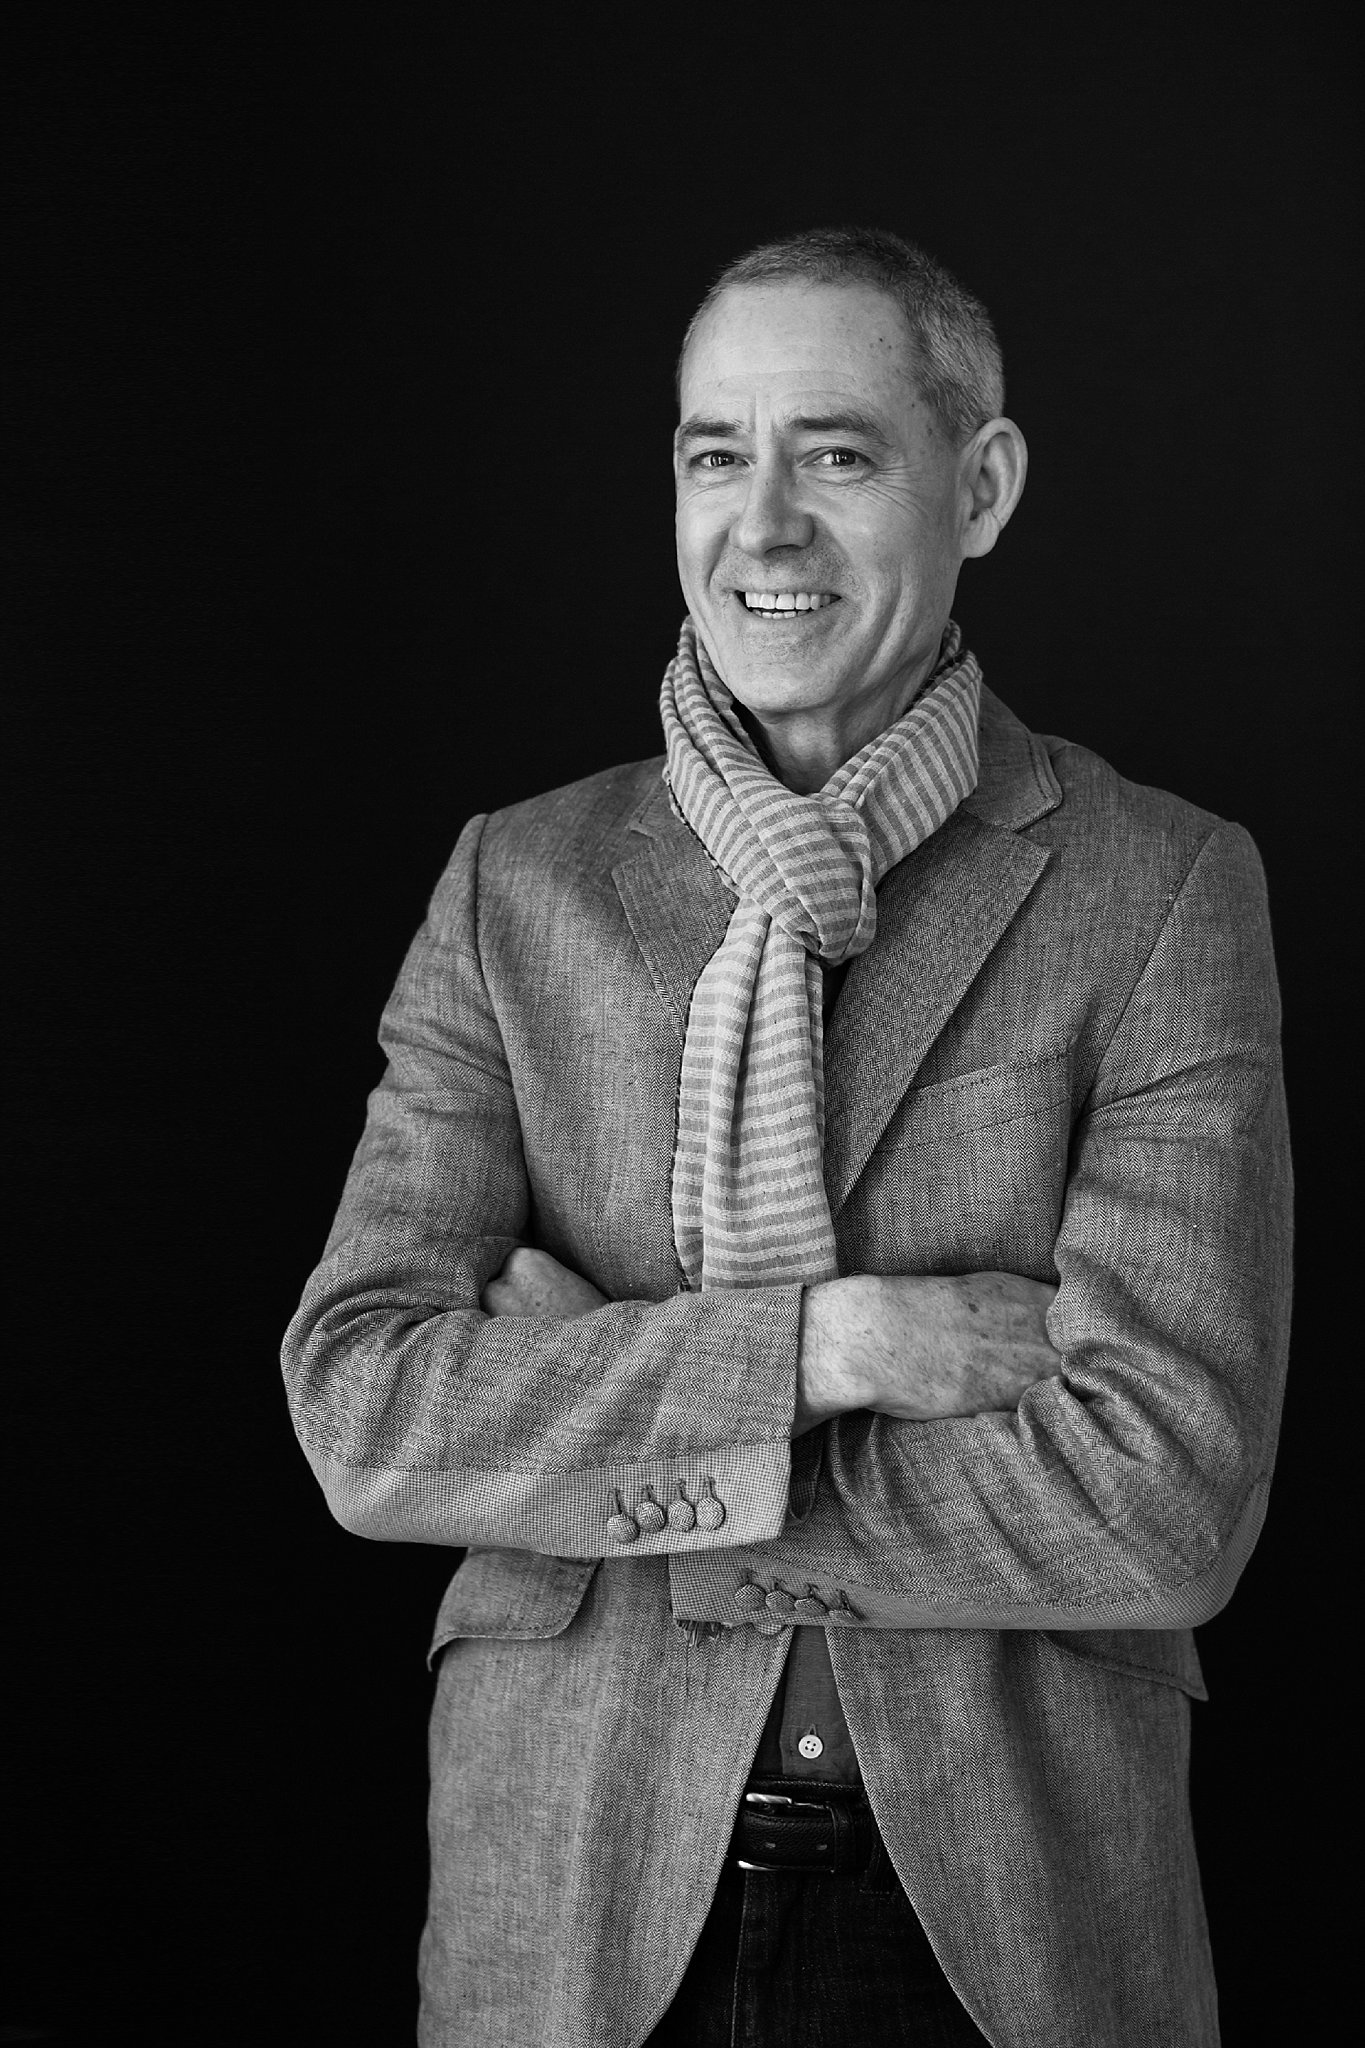 Black and White Portrait of David in Tweed Jacket_0018.jpg